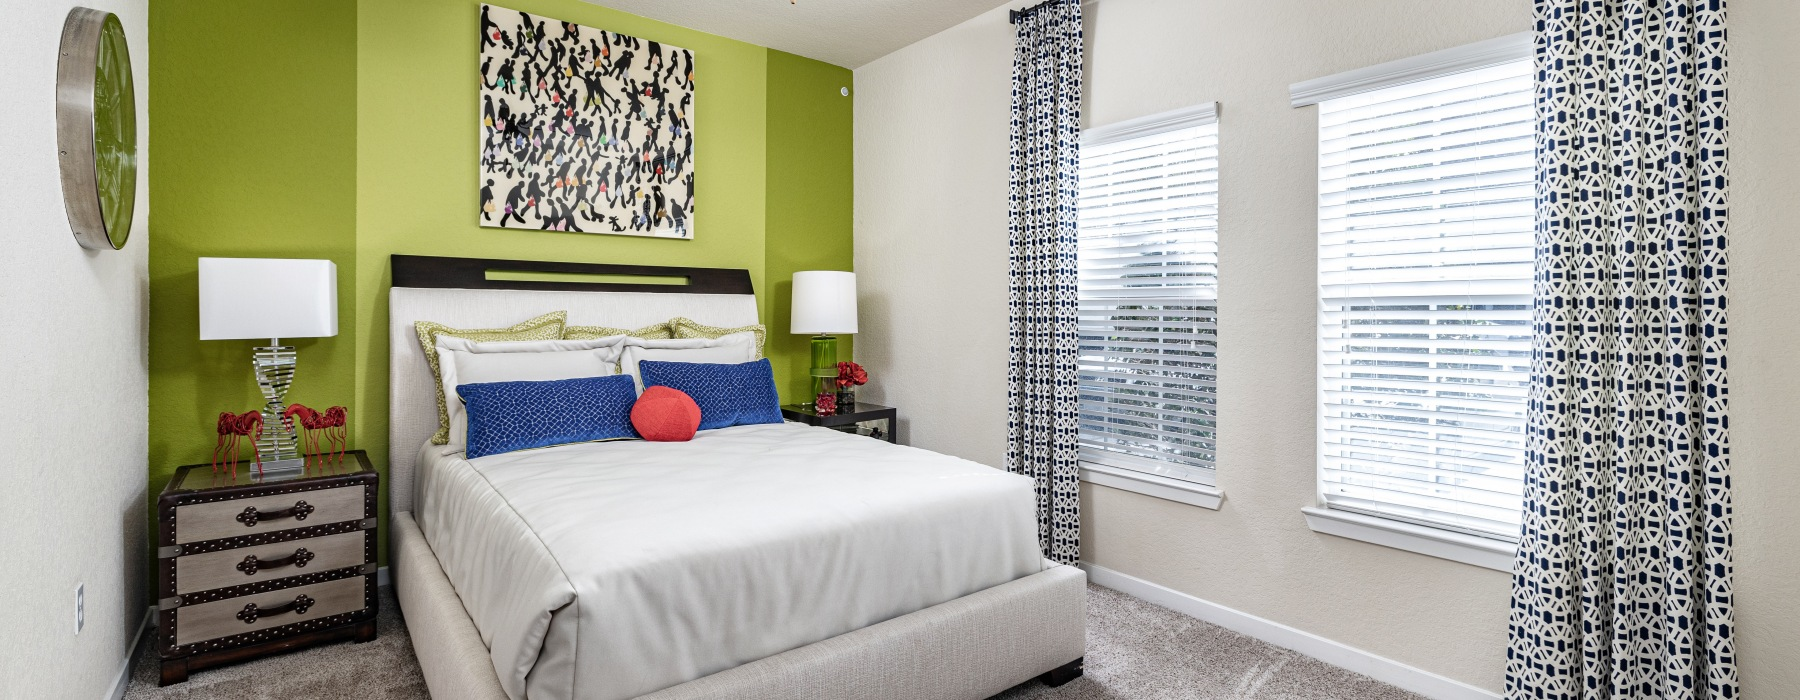 Bedroom in model home at Cumberland Park Apartments in Orlando, Florida